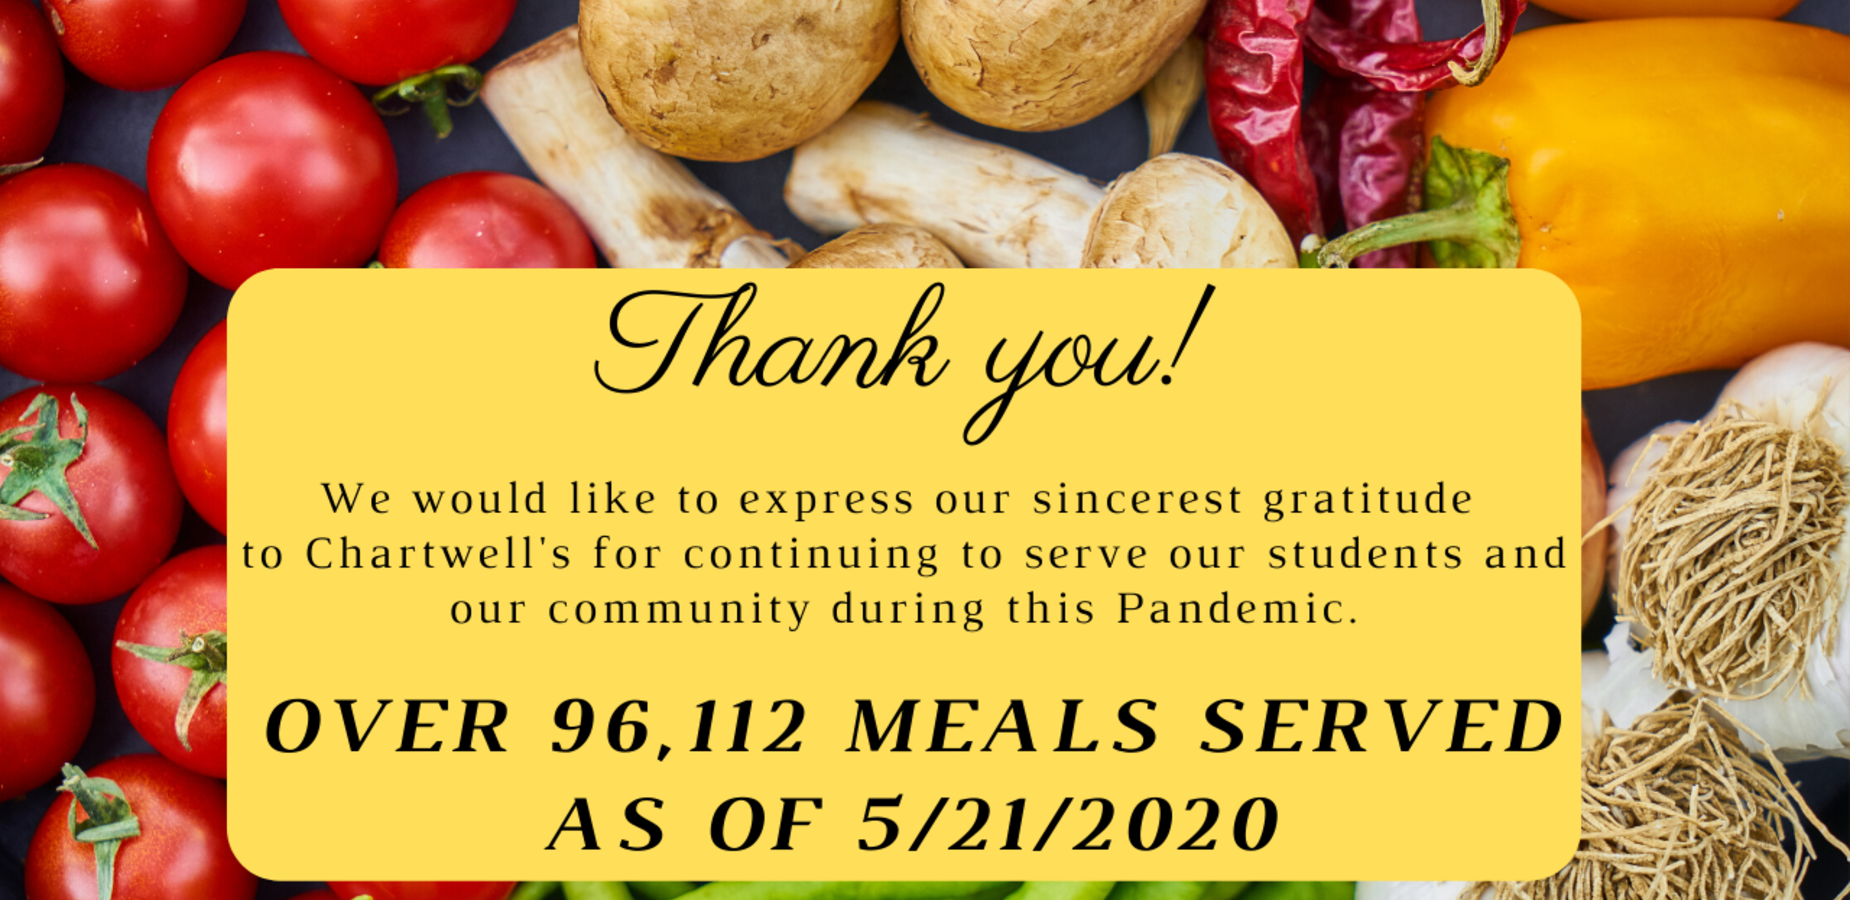 Chartwell's Serves over 96,000 meals during COVID19 school closure